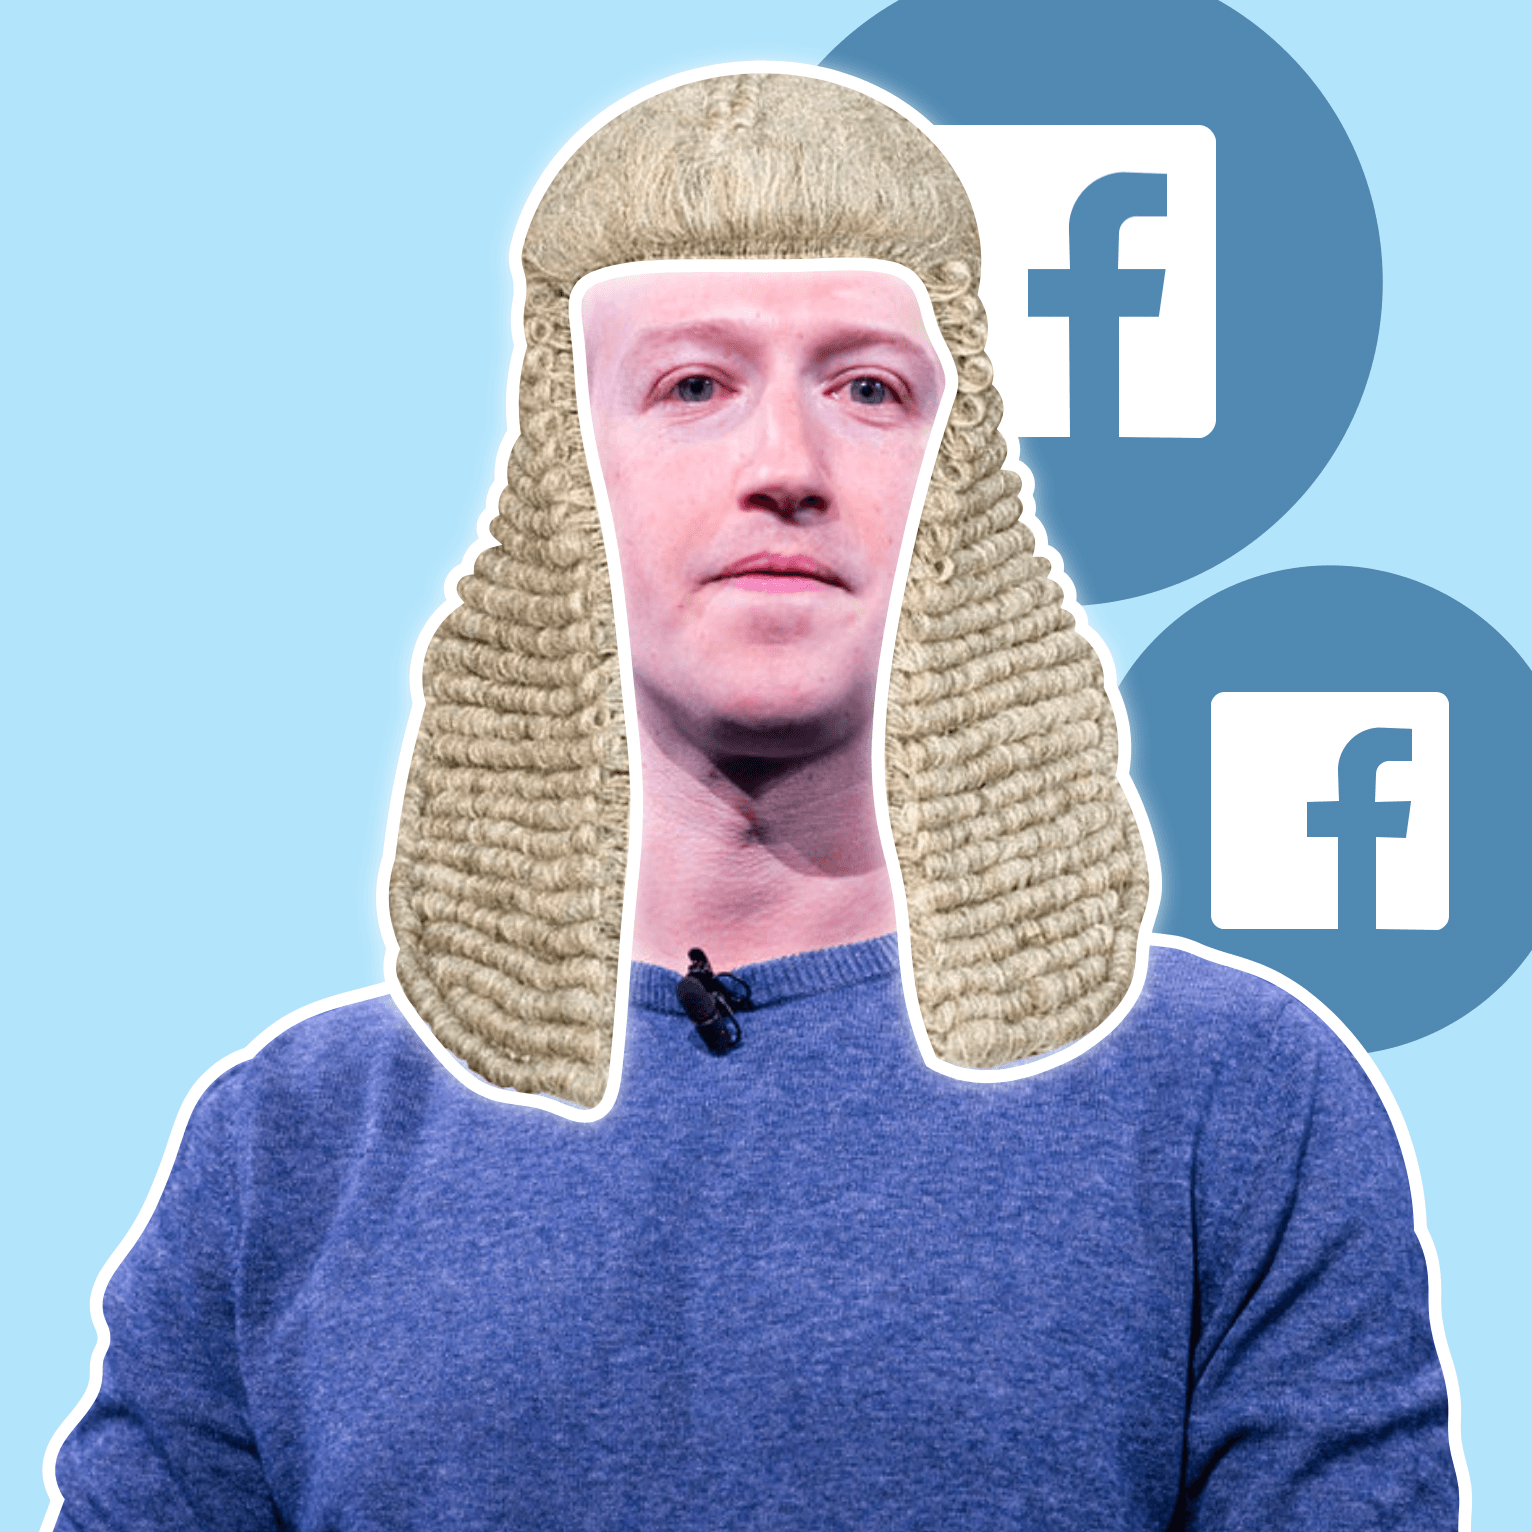 Facebook's Supreme Court: Why Facebook Created The Content 'Oversight Board' 1